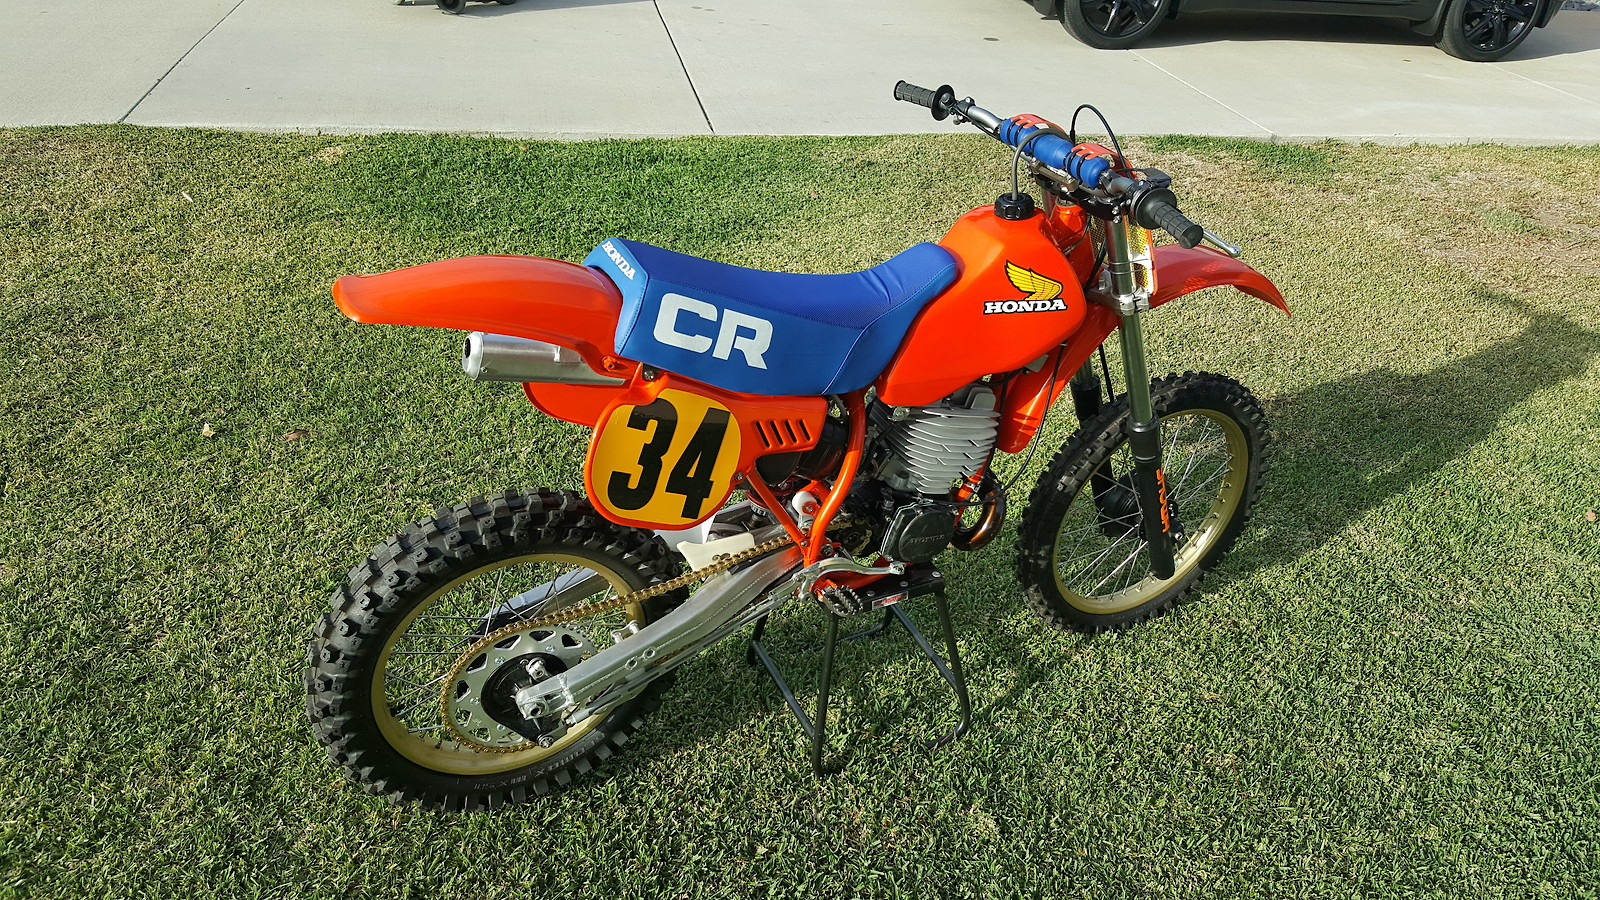 cr480RG1 - Vintage5150 - Motocross Pictures - Vital MX